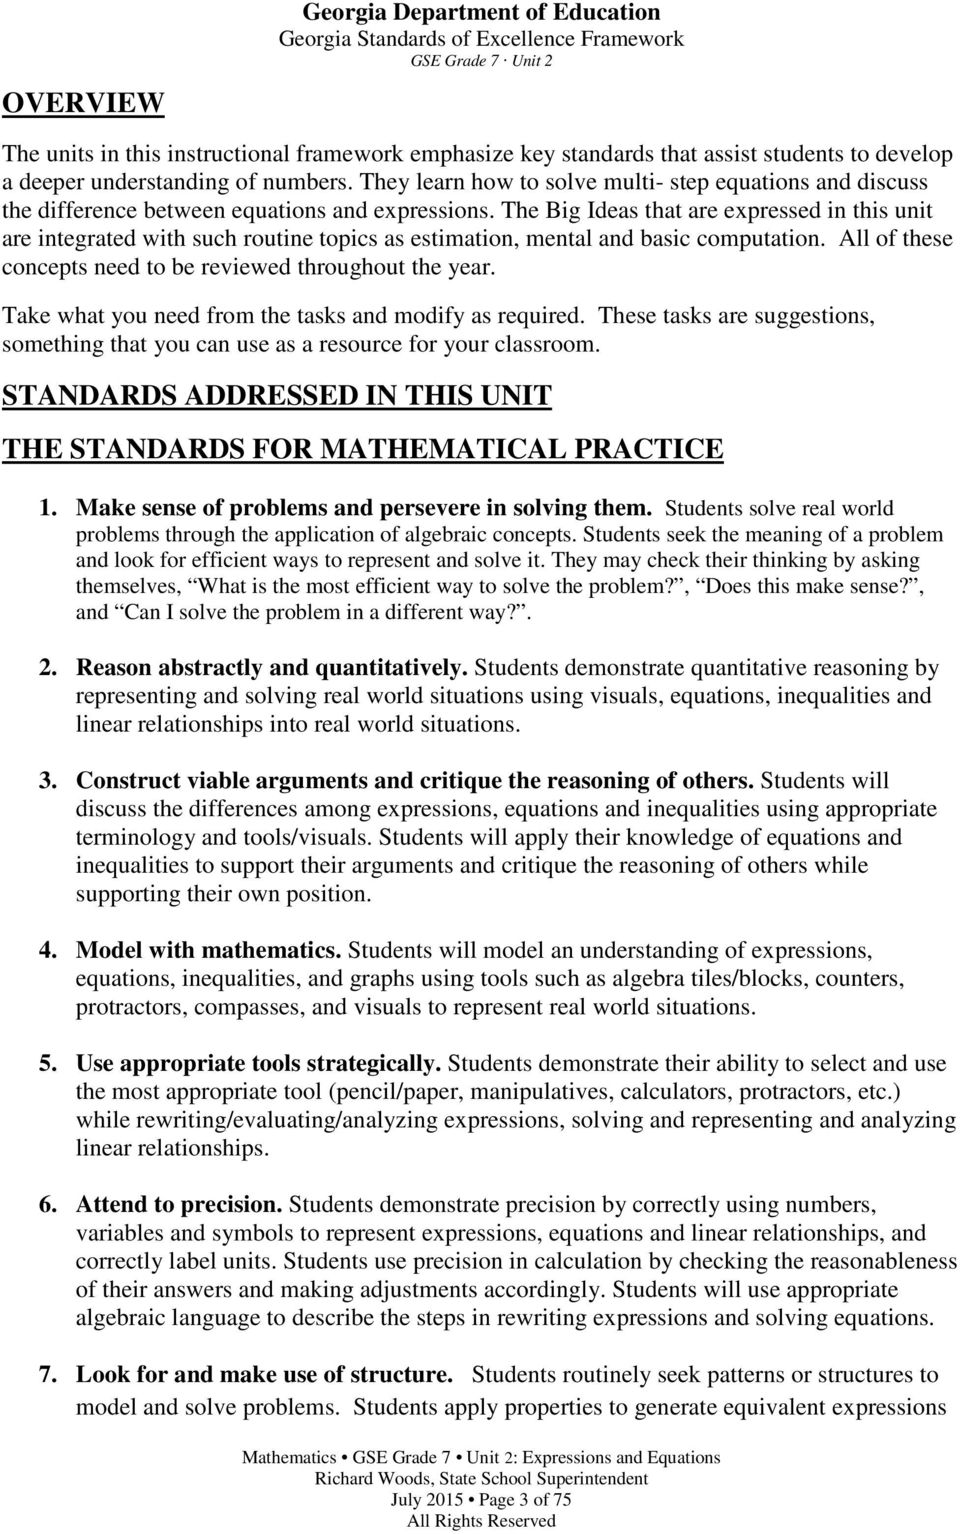 Georgia Standards of Excellence Frameworks  Mathematics  GSE Grade 7